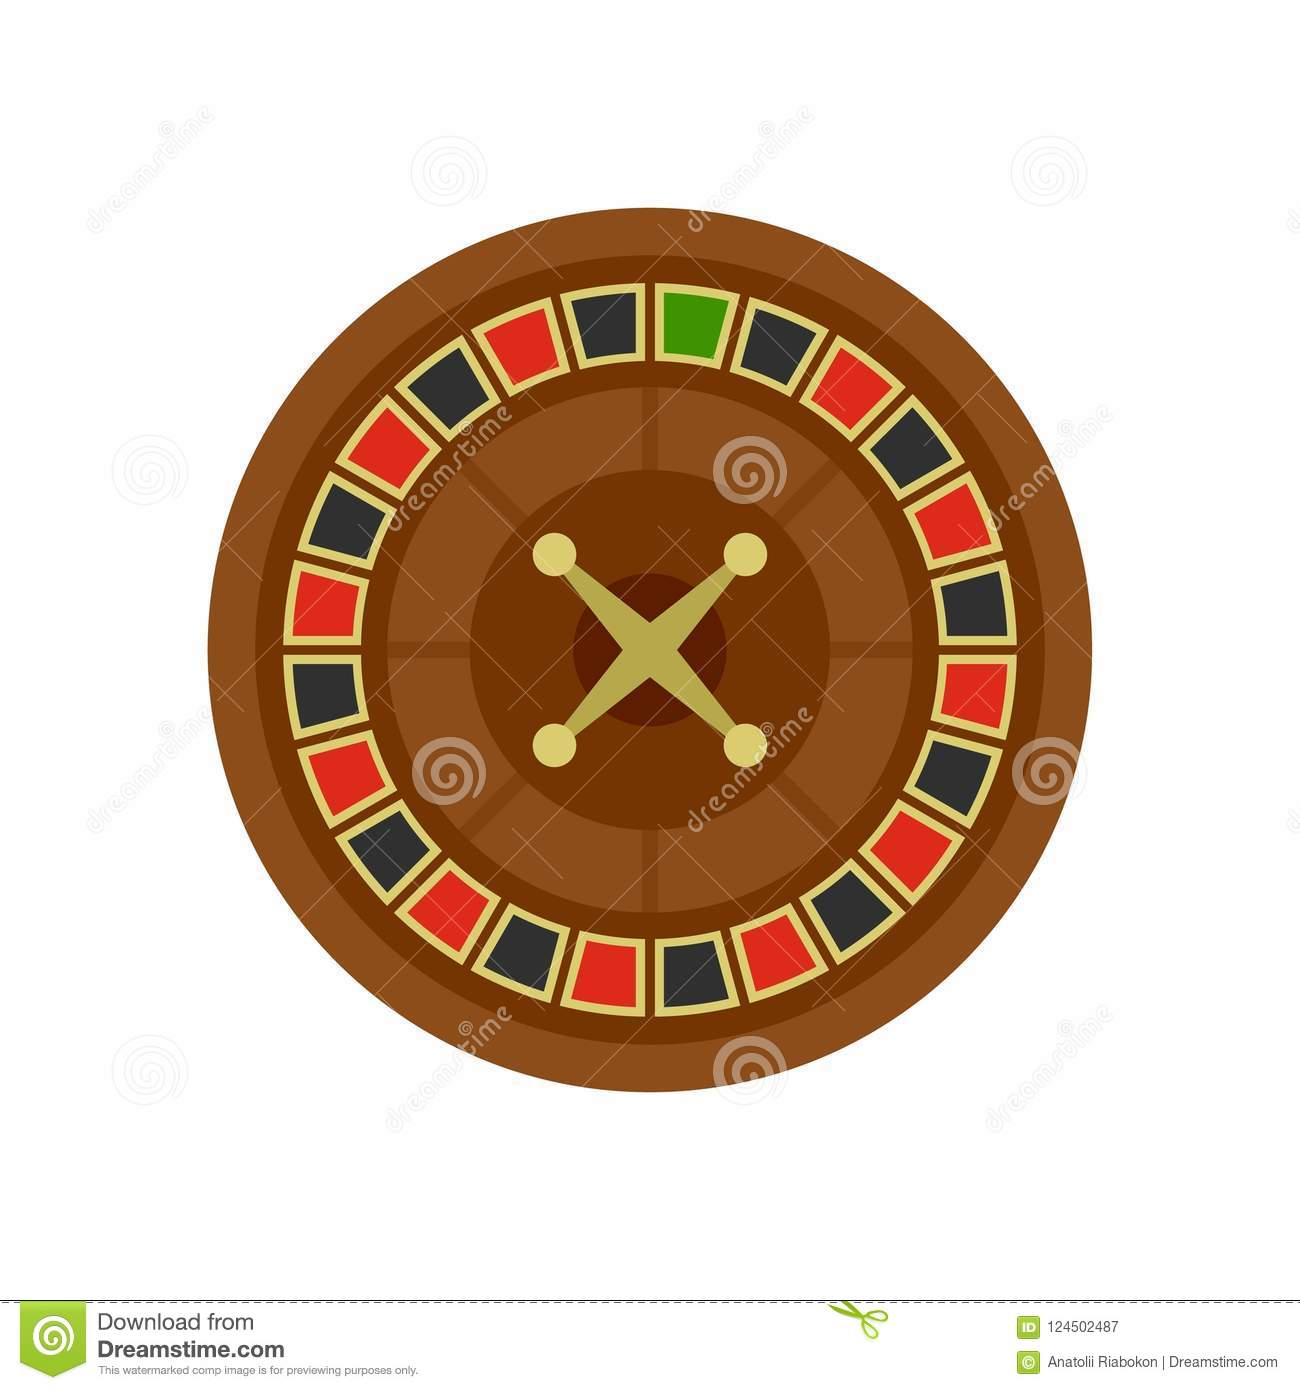 Casino roulette icon, flat style